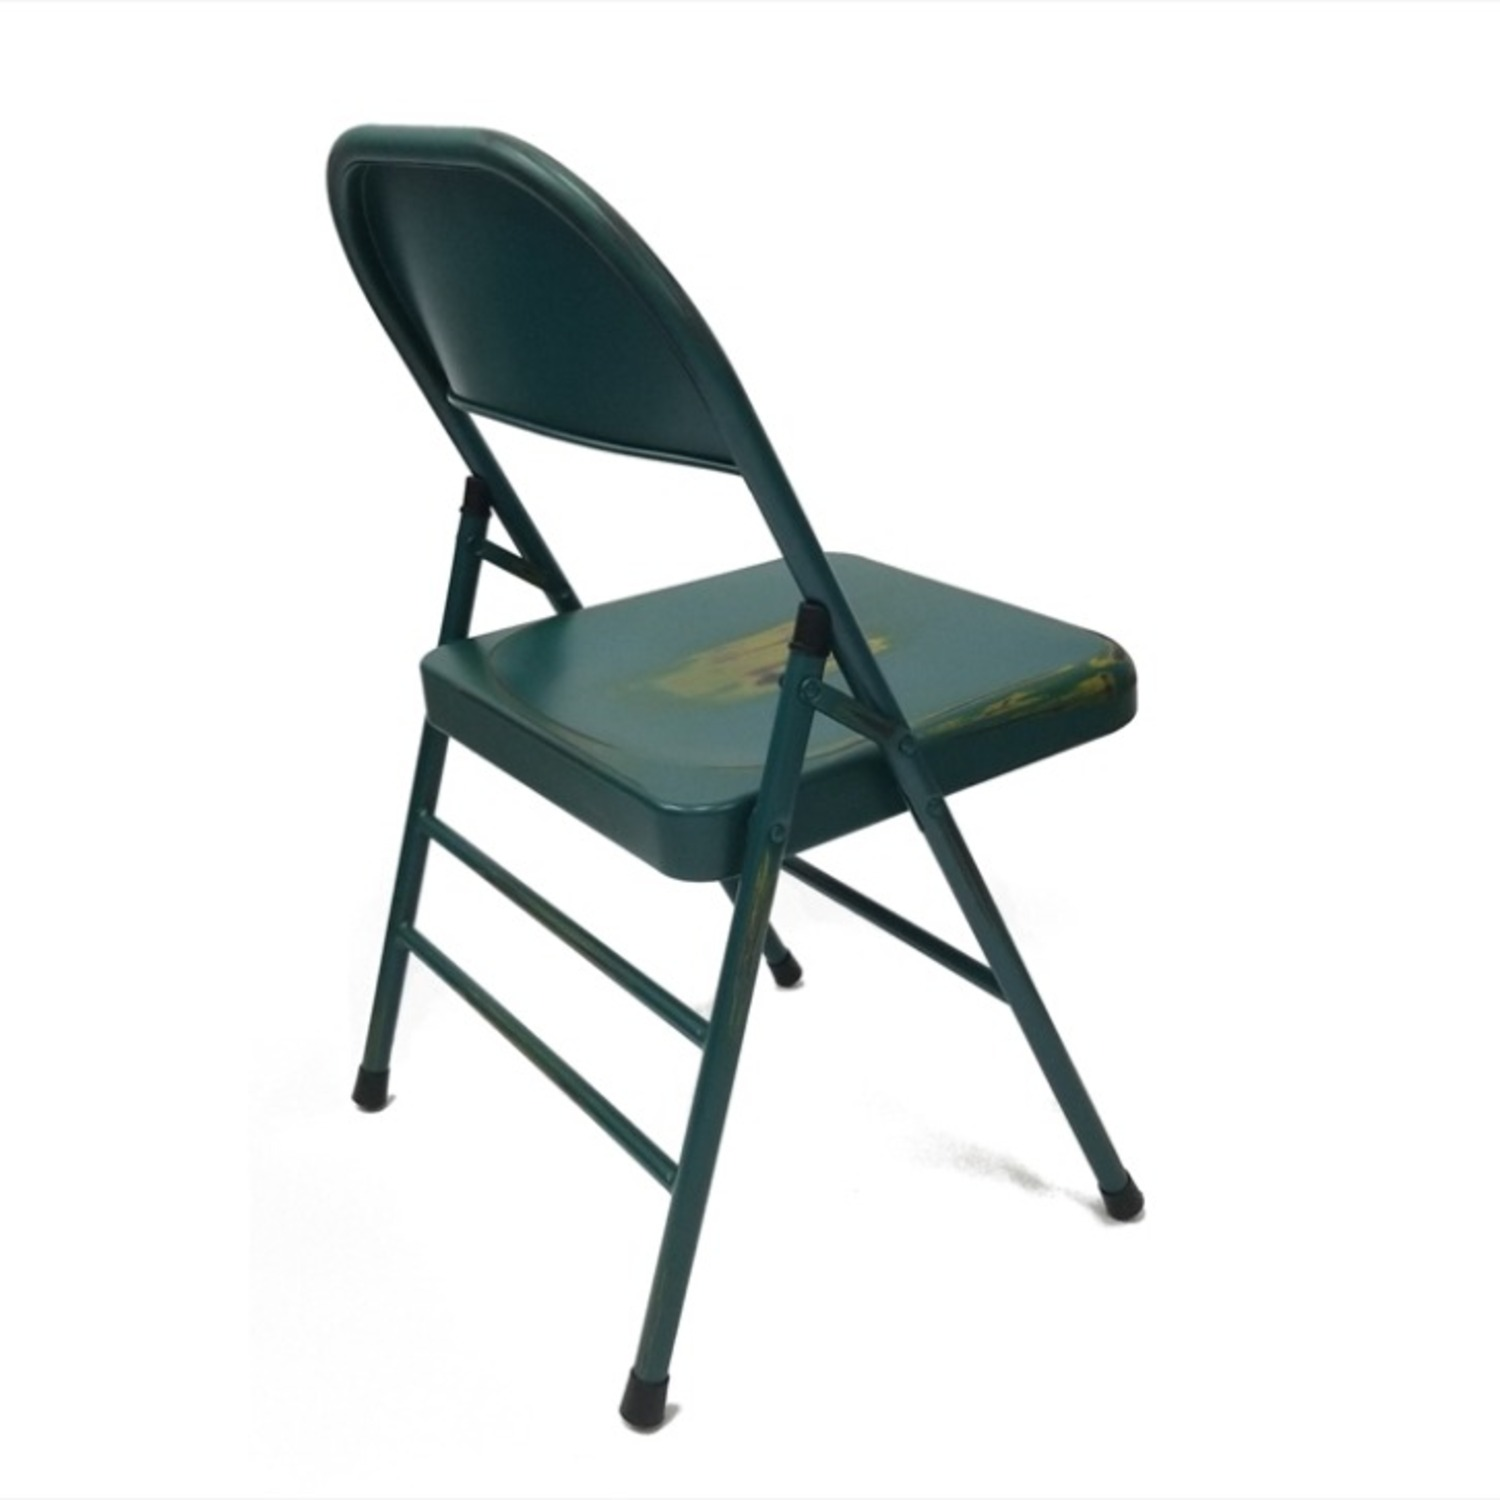 Folding Chair In Turquoise Powder Coated Finish - image-1